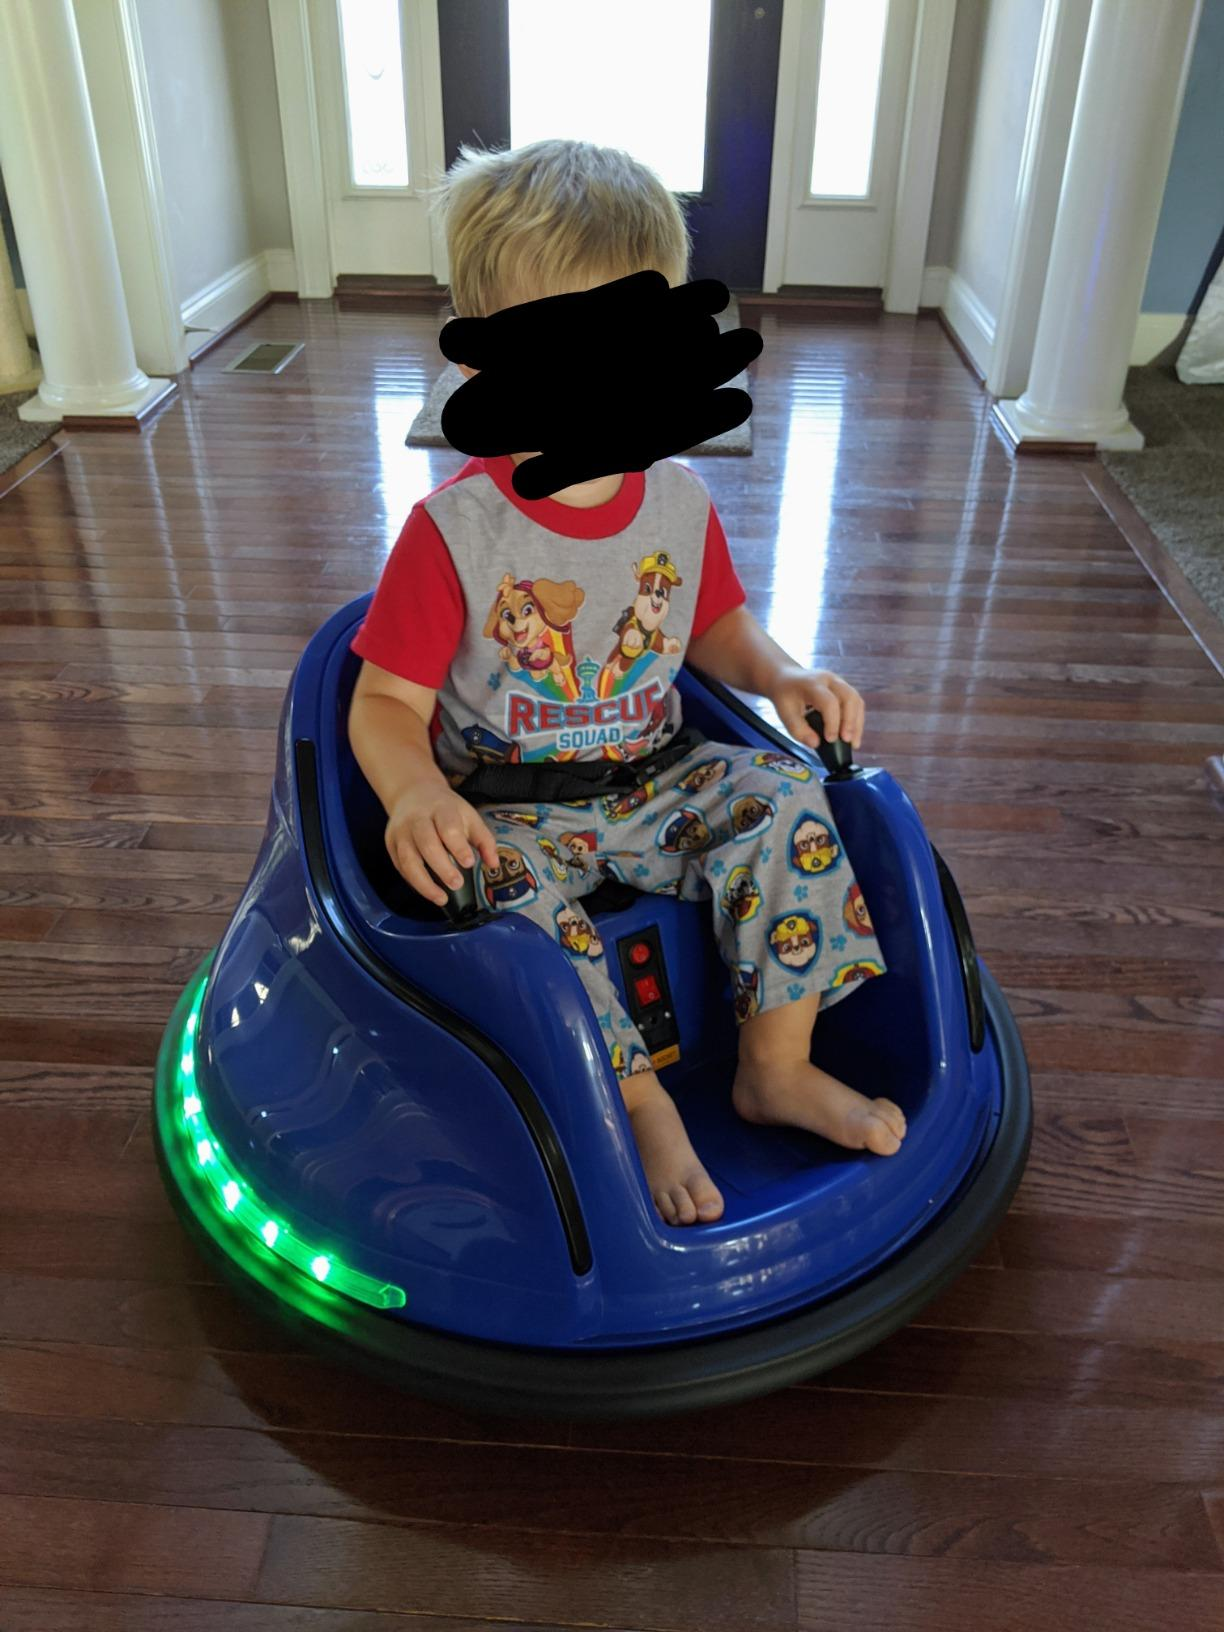 6V Electric Baby Bumper Car with Remote Control, Dark Blue photo review